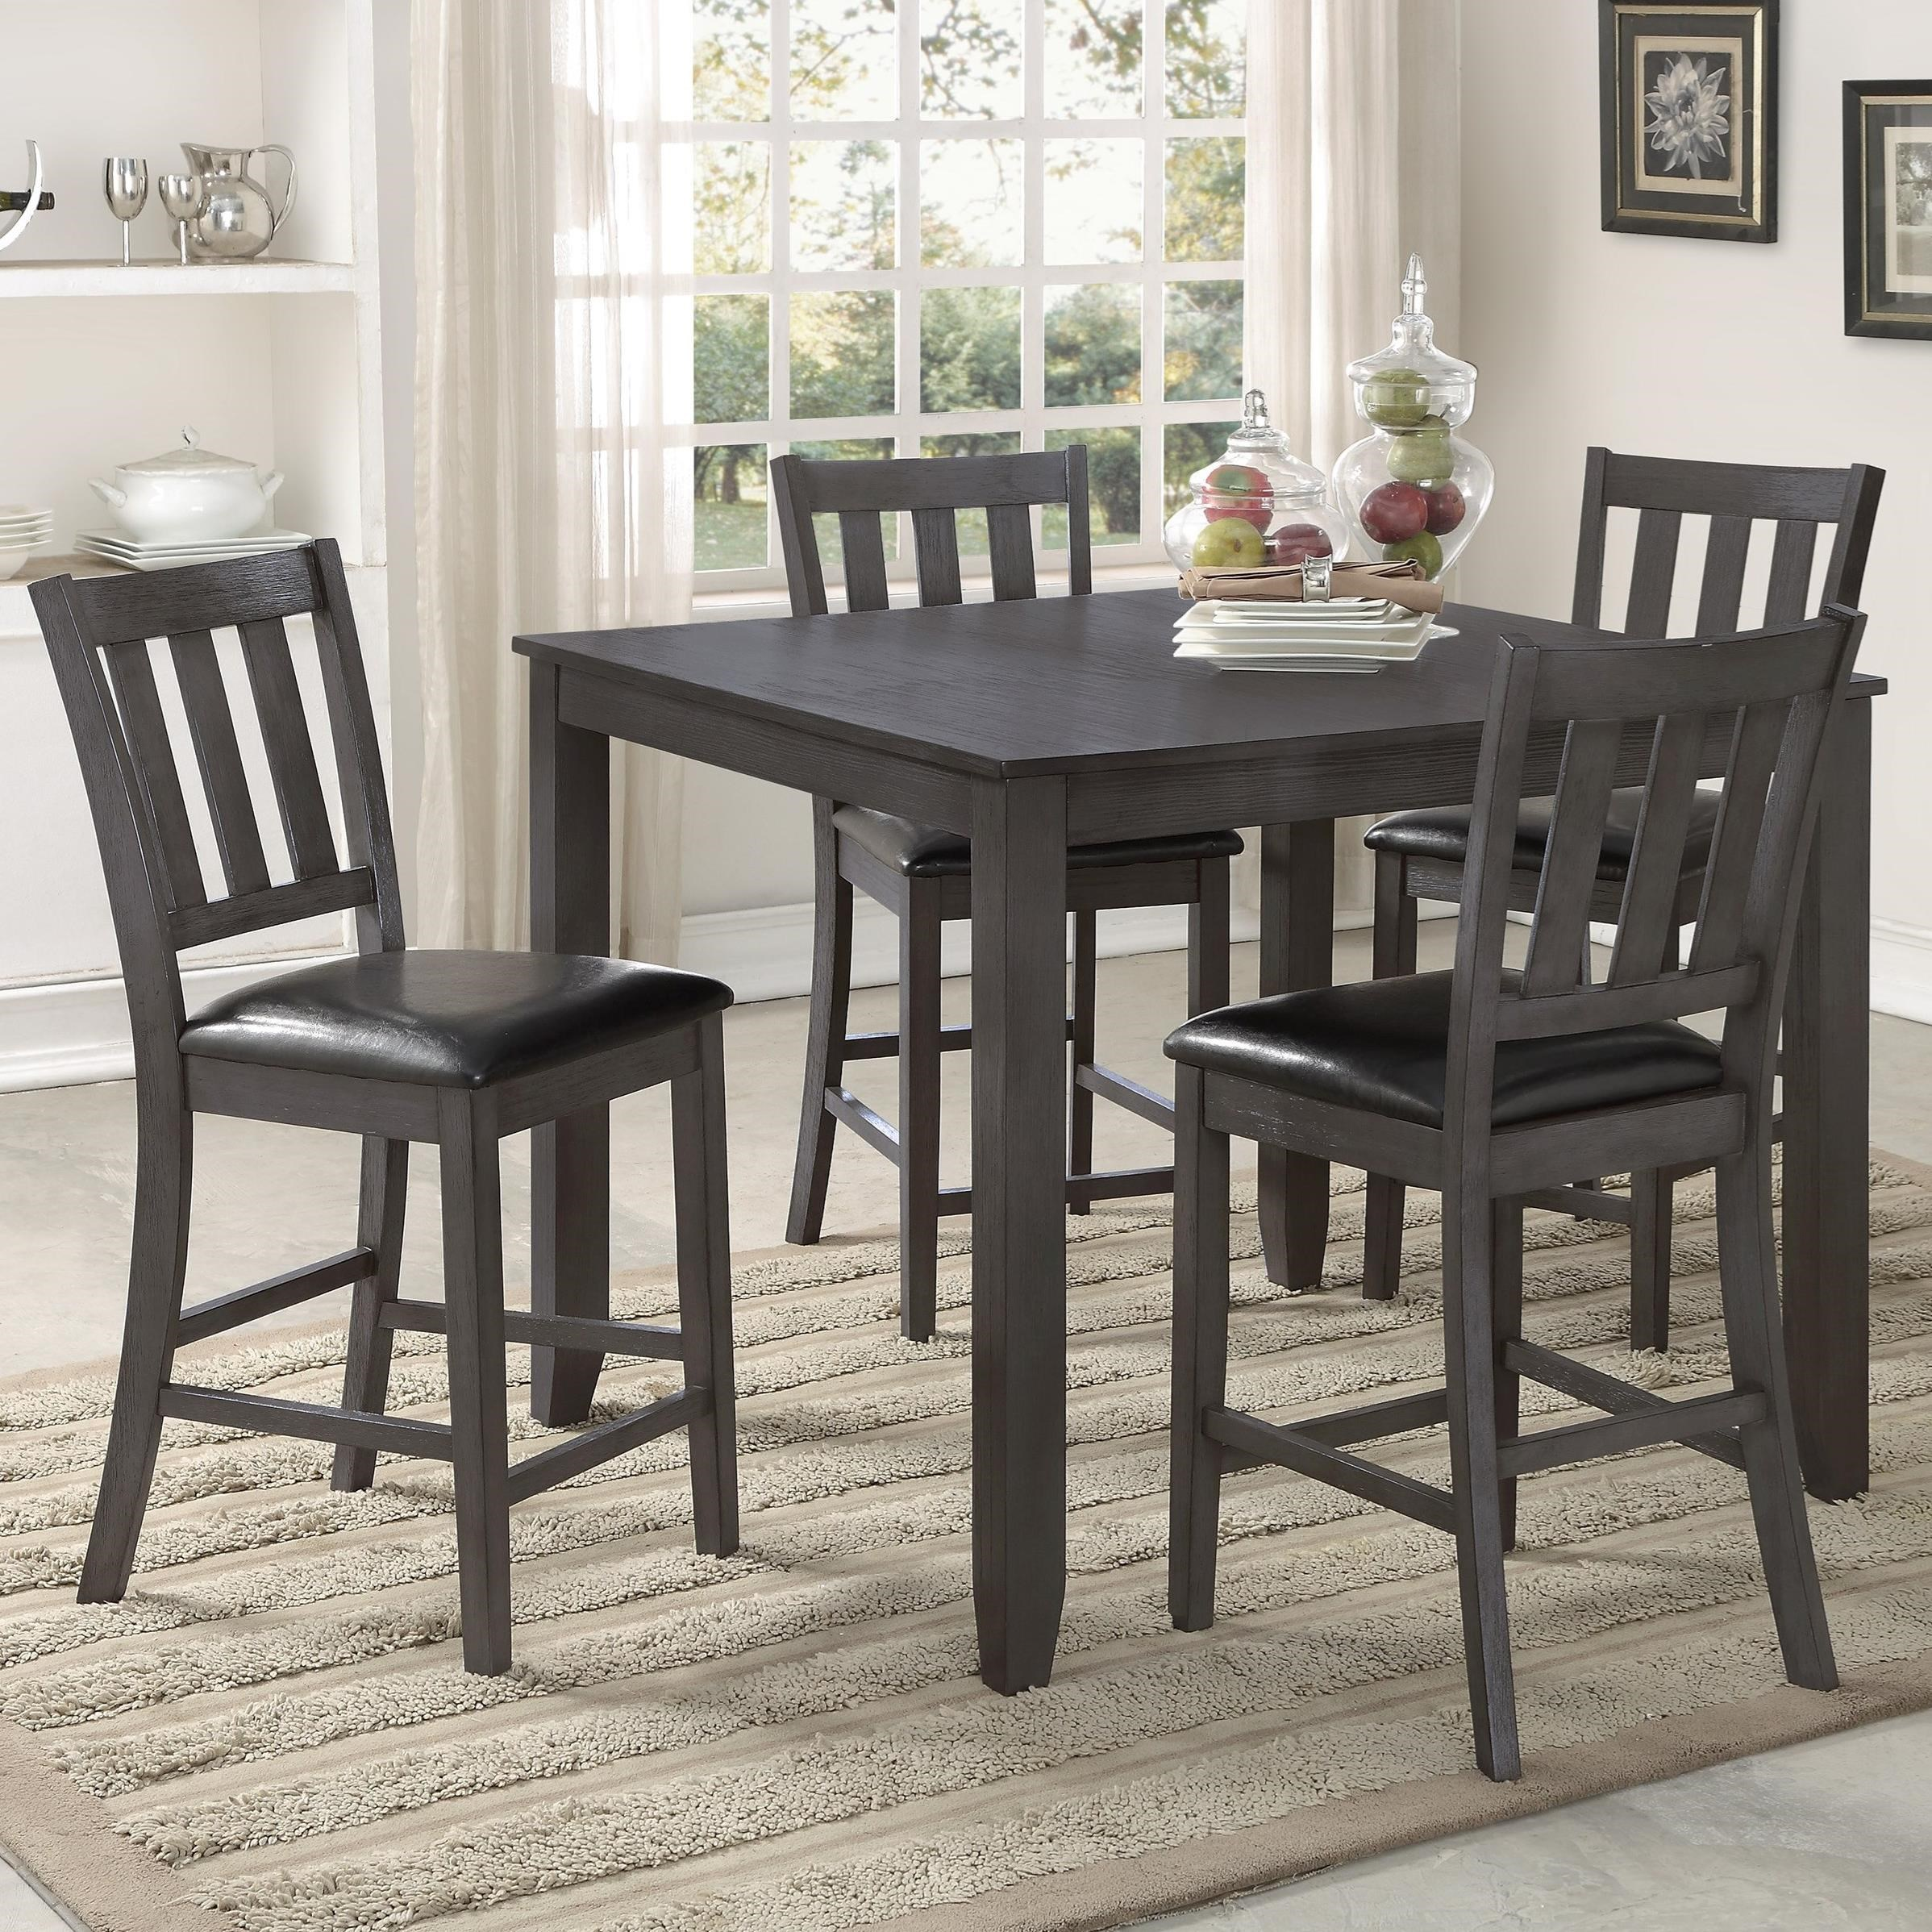 dining with chairs bench height beautiful swivel set under of oak small and wood counter for table dark